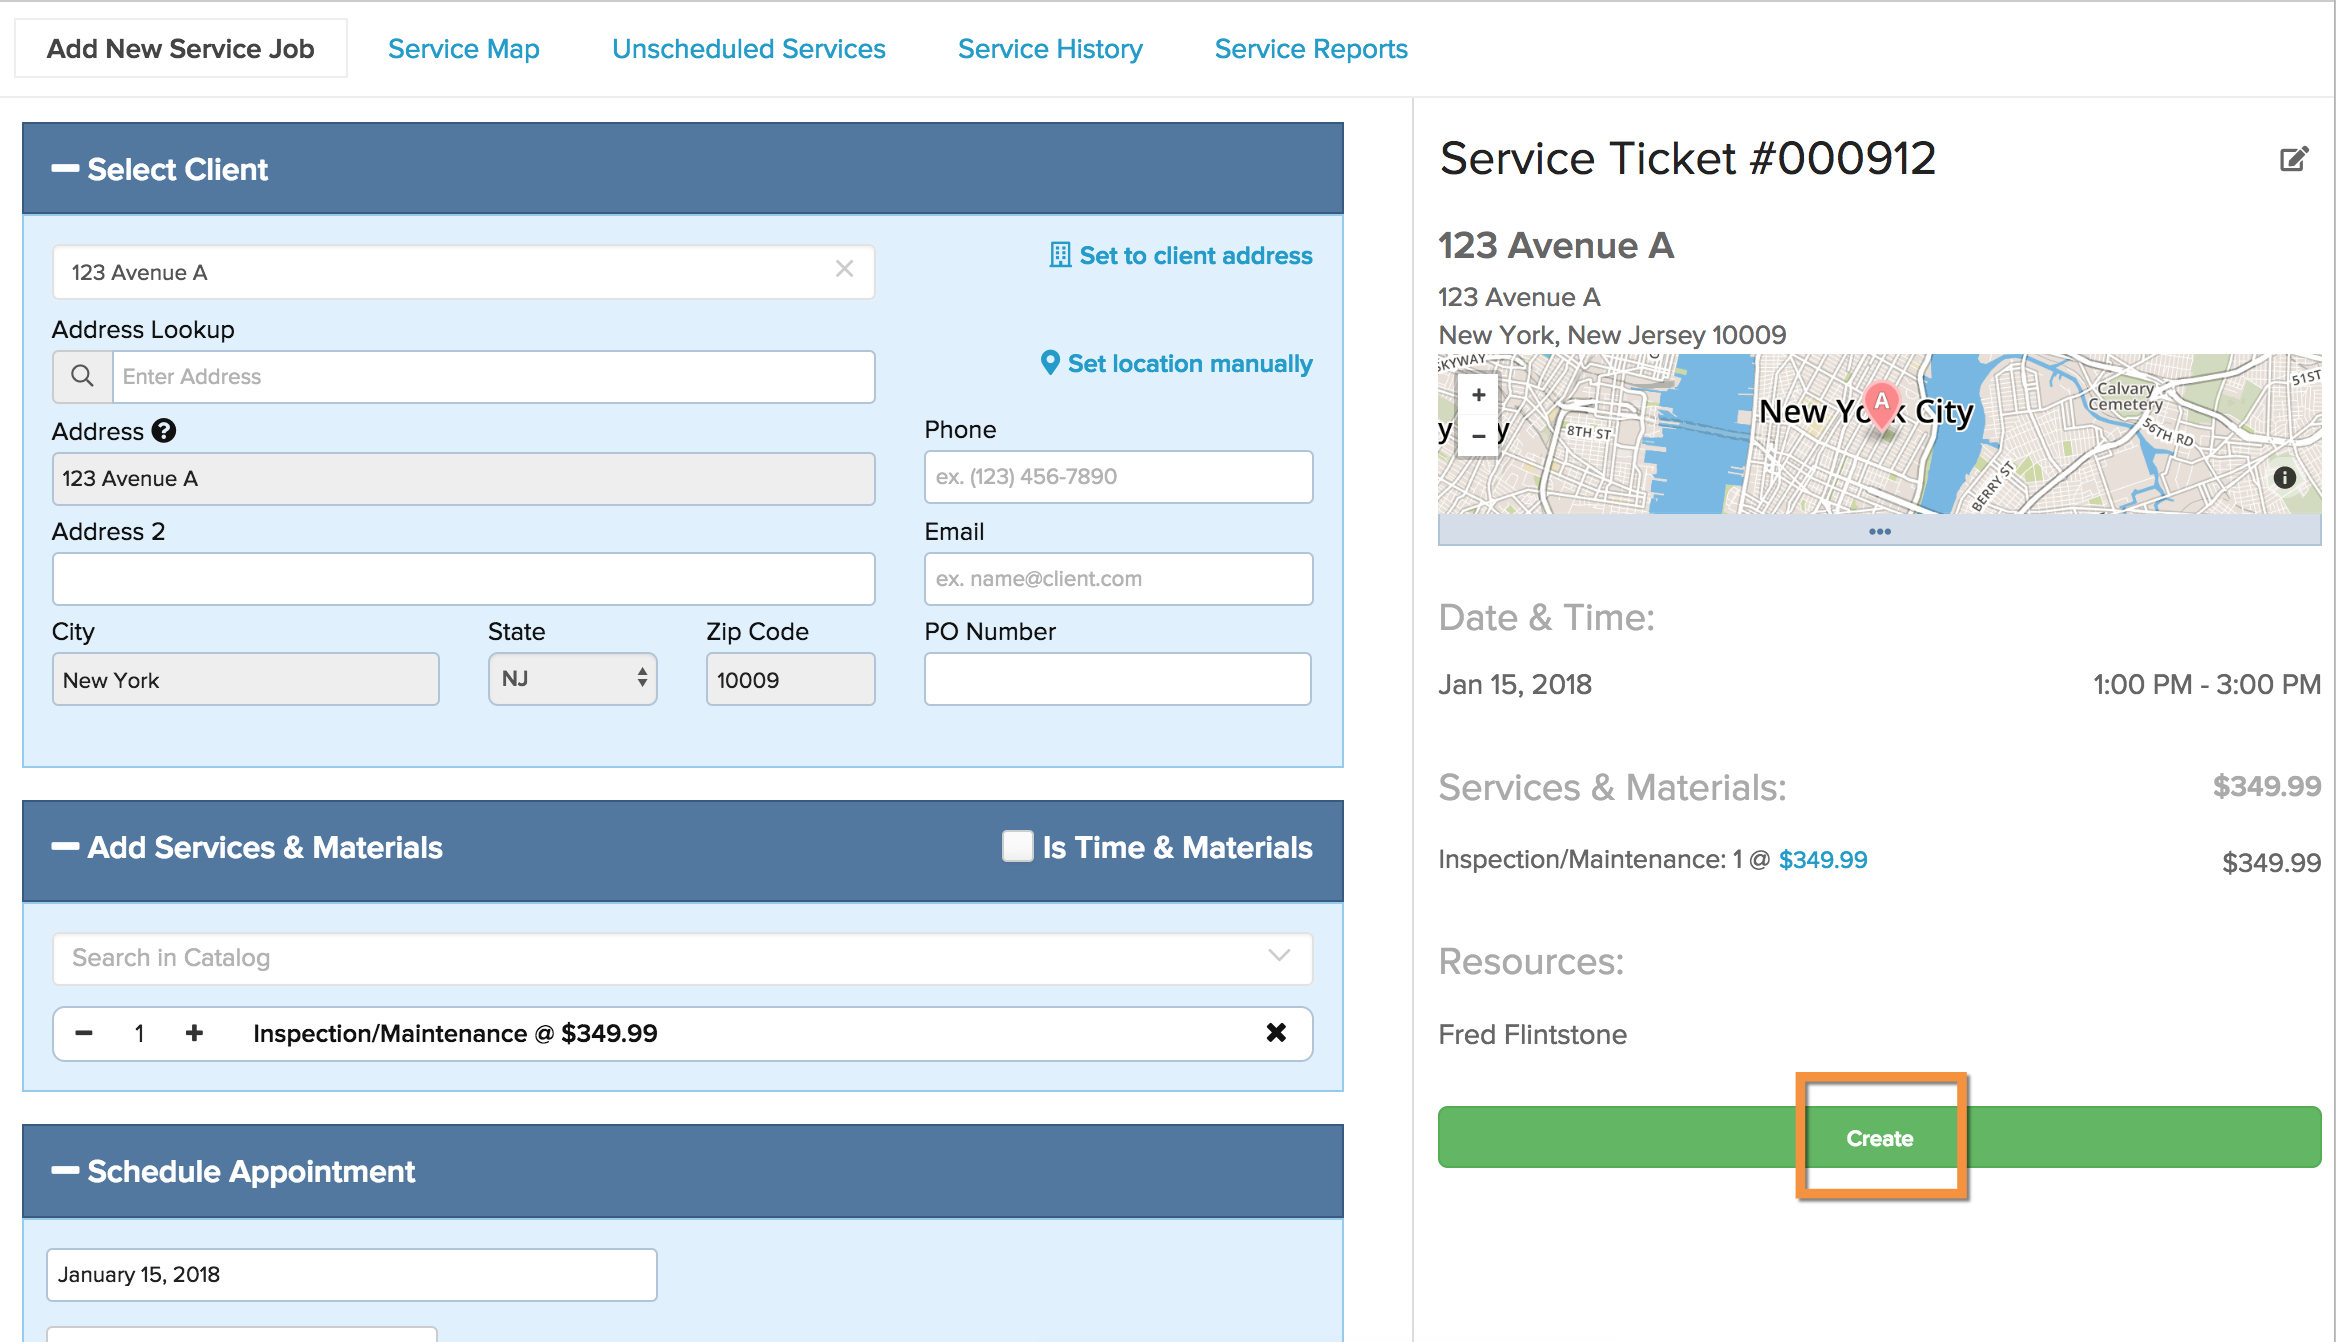 Screen-Shot-2018-01-15-at-3.58.02-PM How Do I Switch a Service Ticket from Pending to Scheduled?